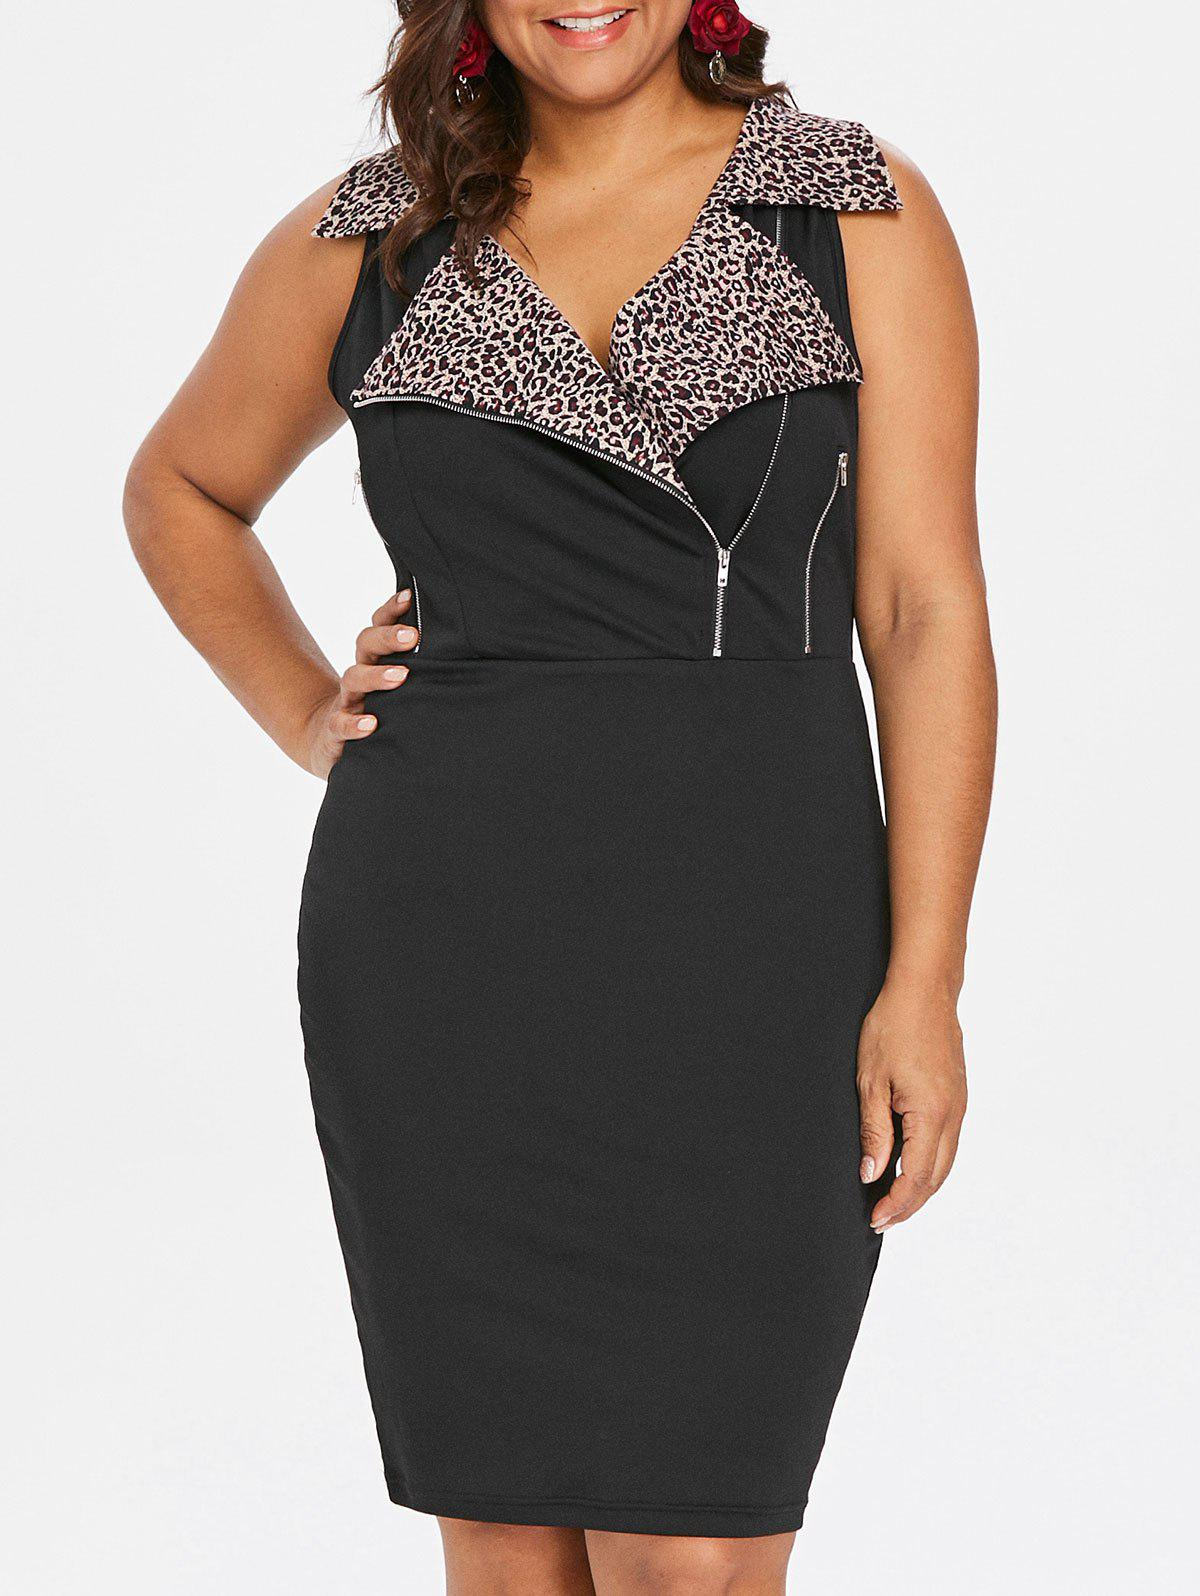 Chic Plus Size Leopard Sleeveless Sheath Dress